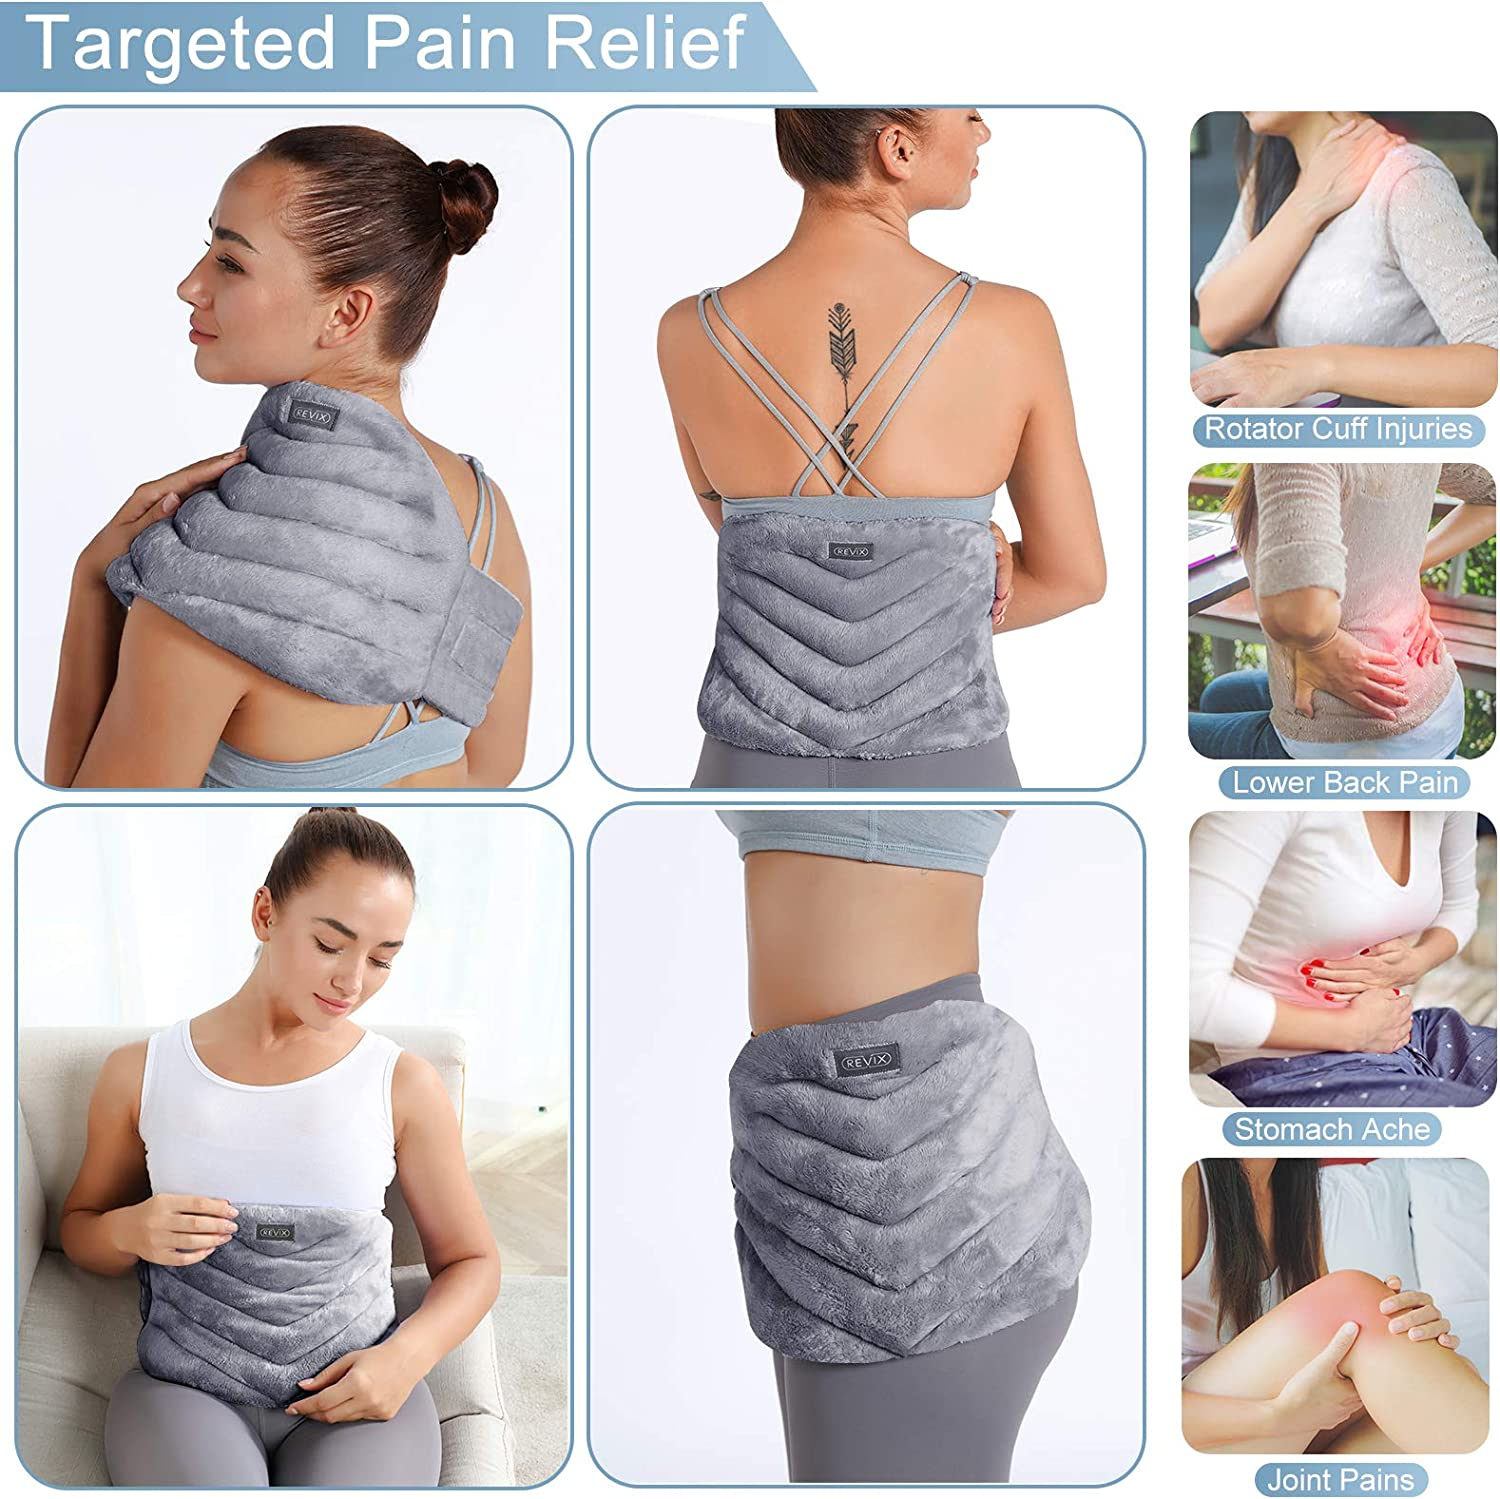 Microwavable Heating Pad for Back Pain Relief, Extra Large Microwave Heating Pack with Moist Heat for Waist, Stomach, Shoulder and Neck, Unscented Hot or Cold Pack, Gray